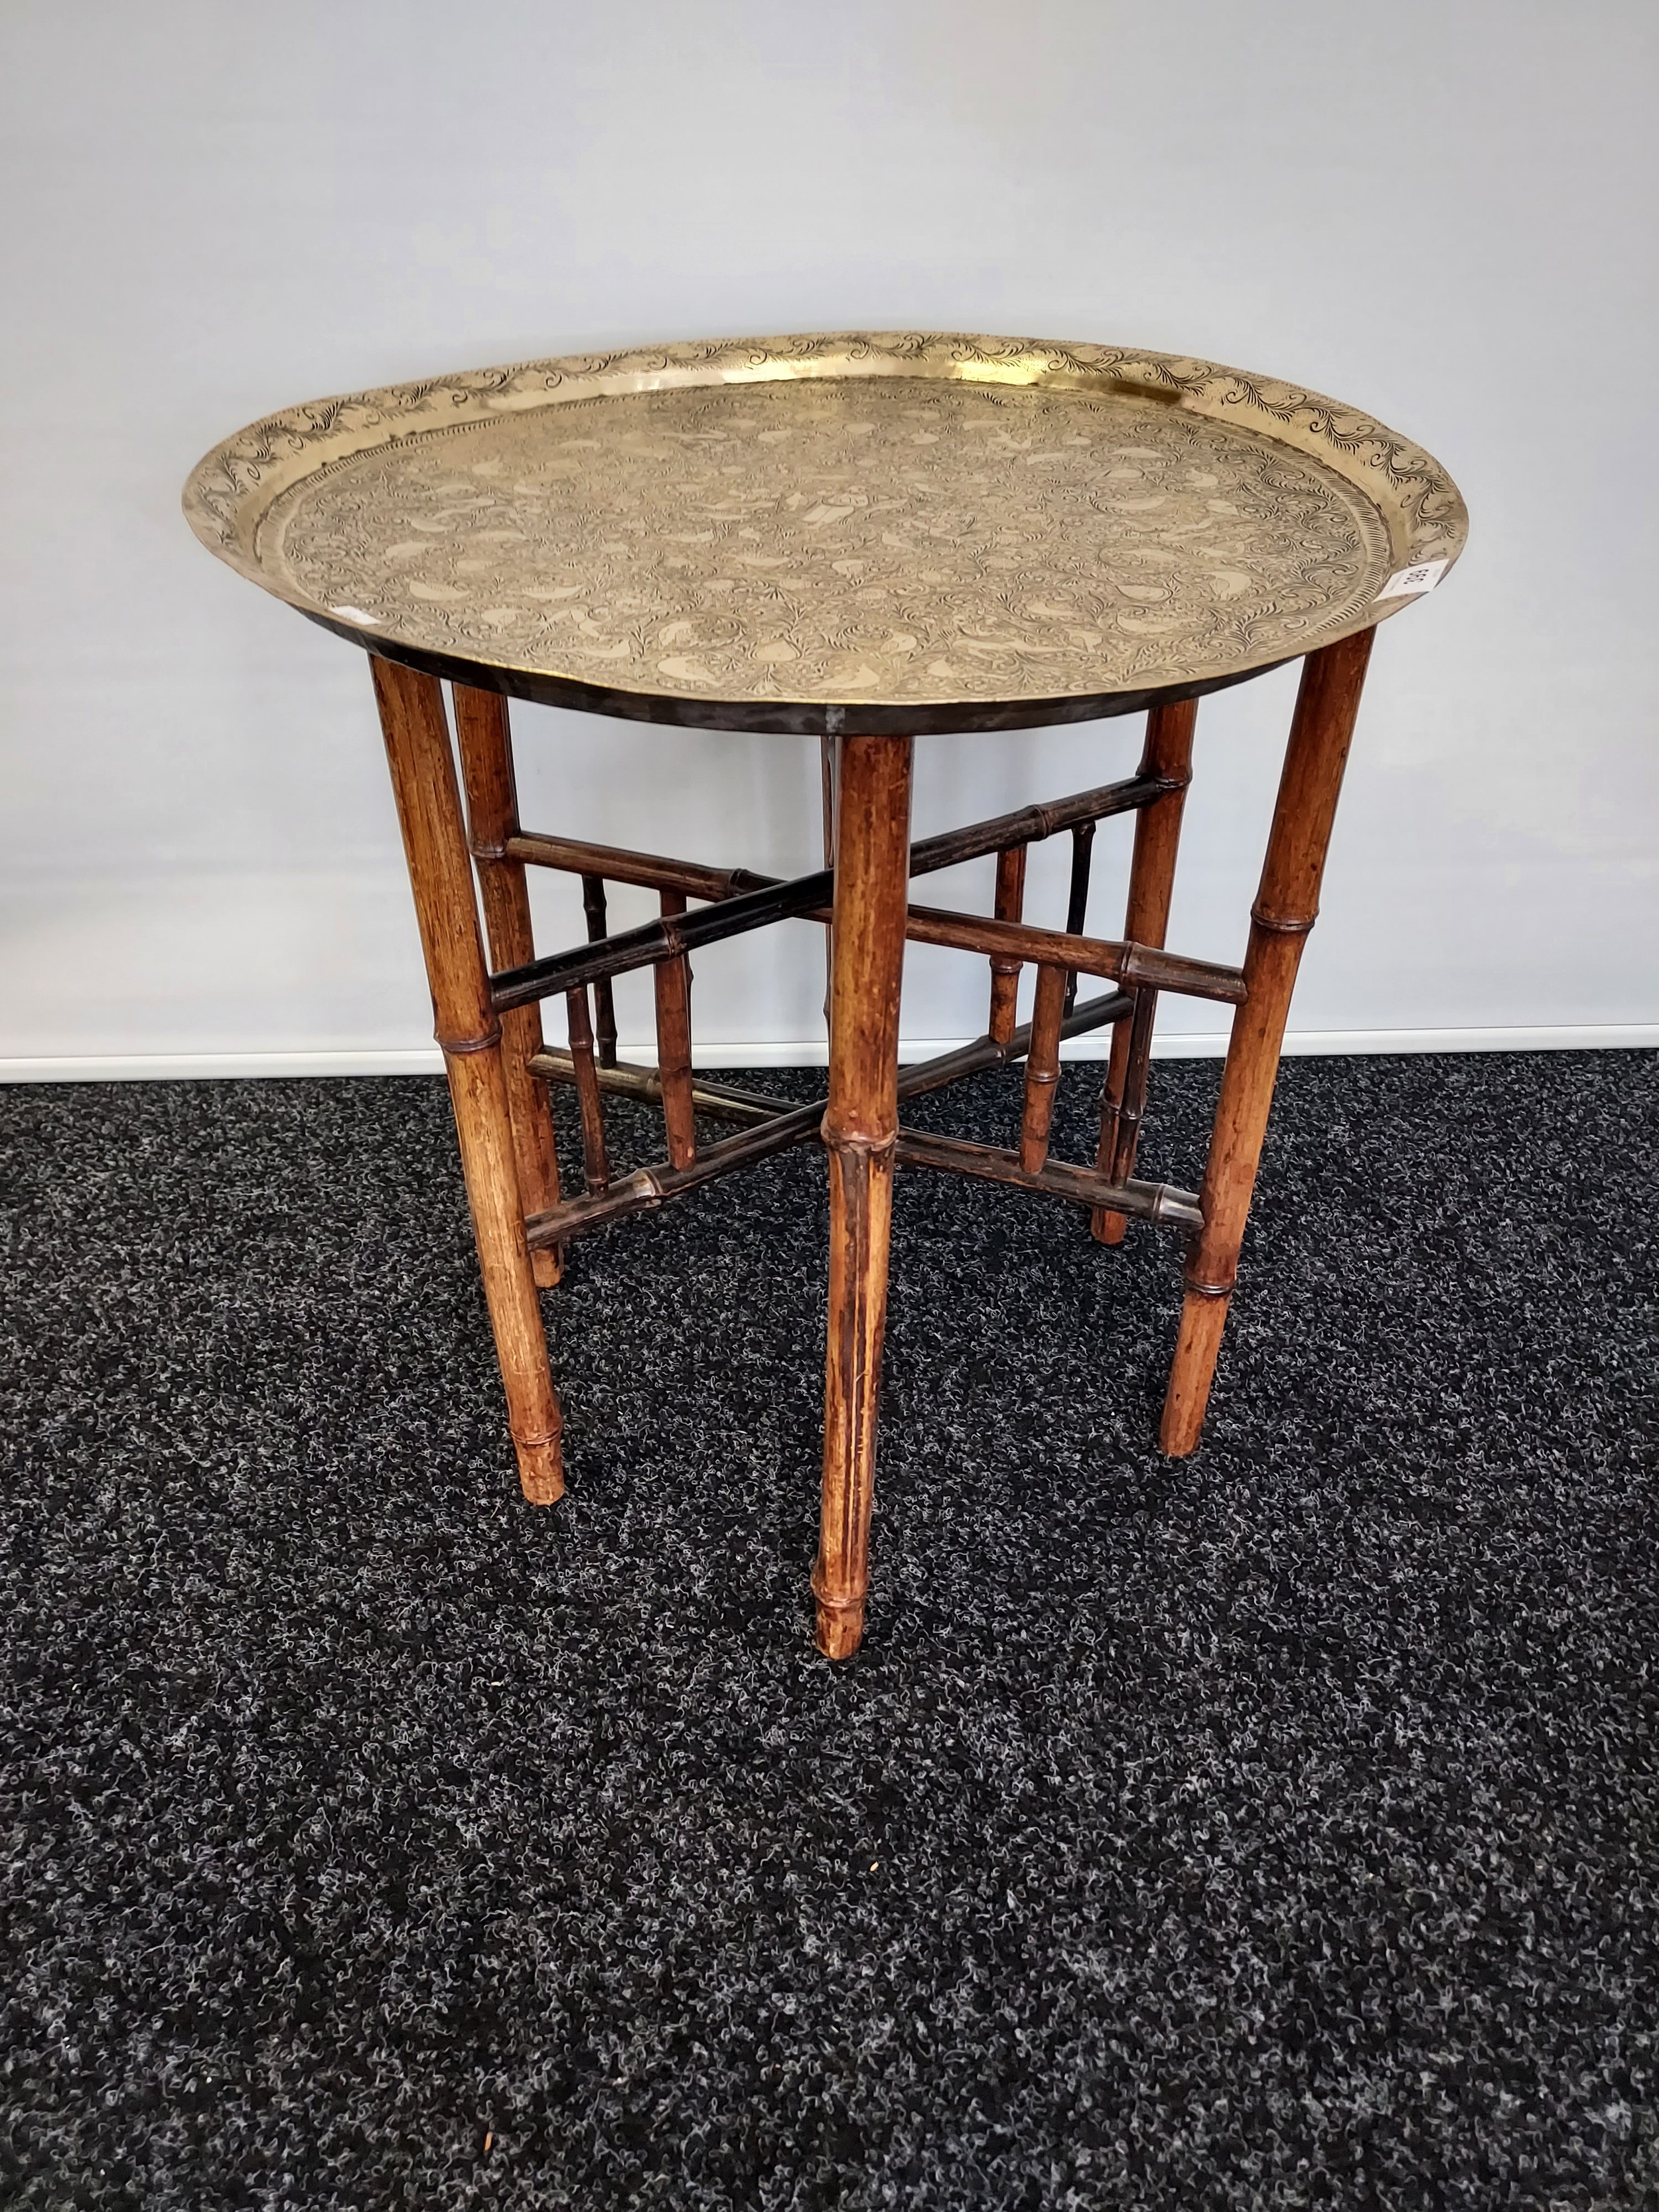 Antique Indian/ Benares decorative brass top wit folding bamboo table legs, Decoratively carved.